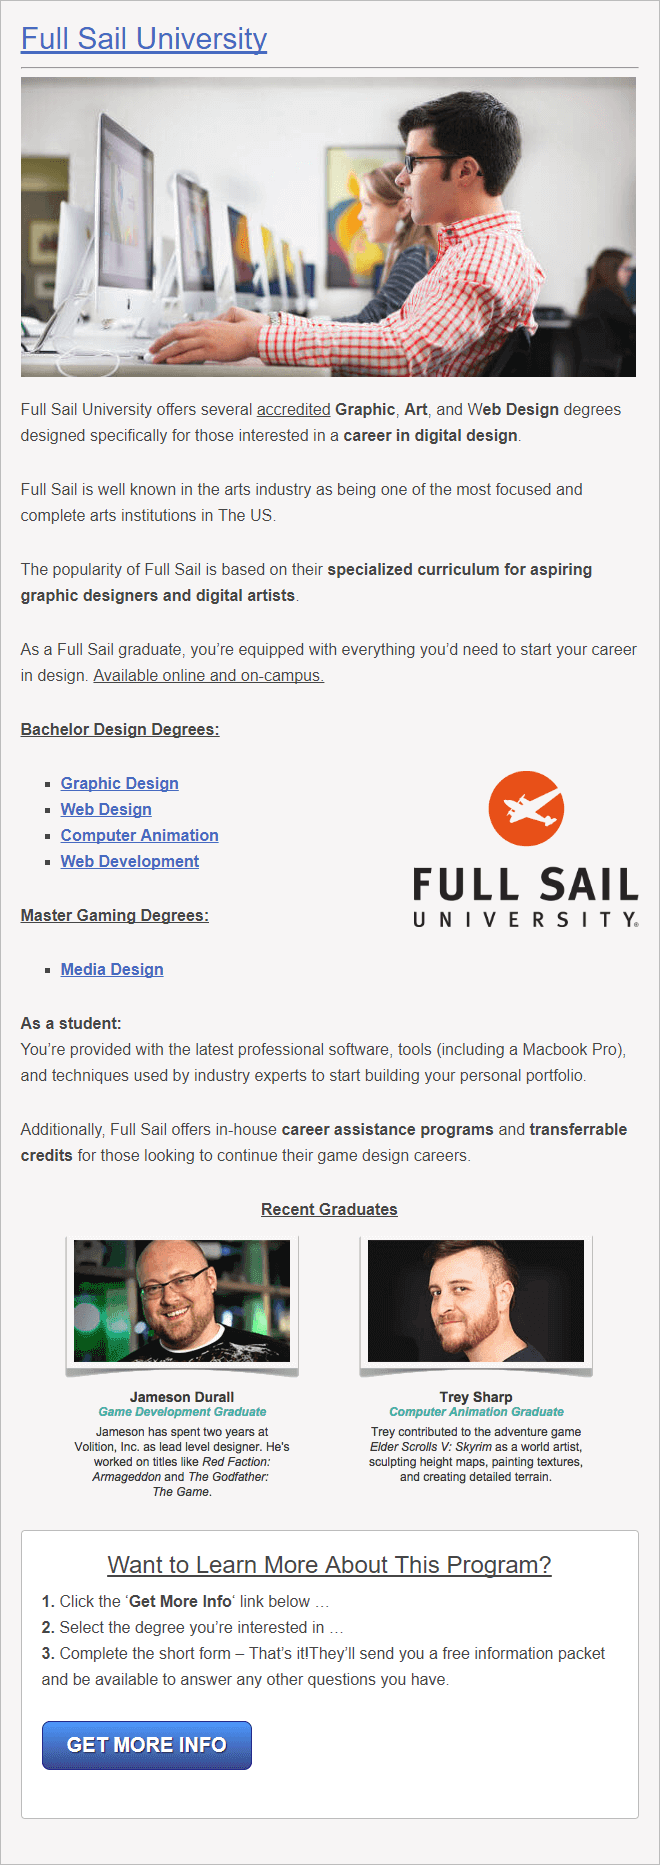 Full Sail University for Graphic Design